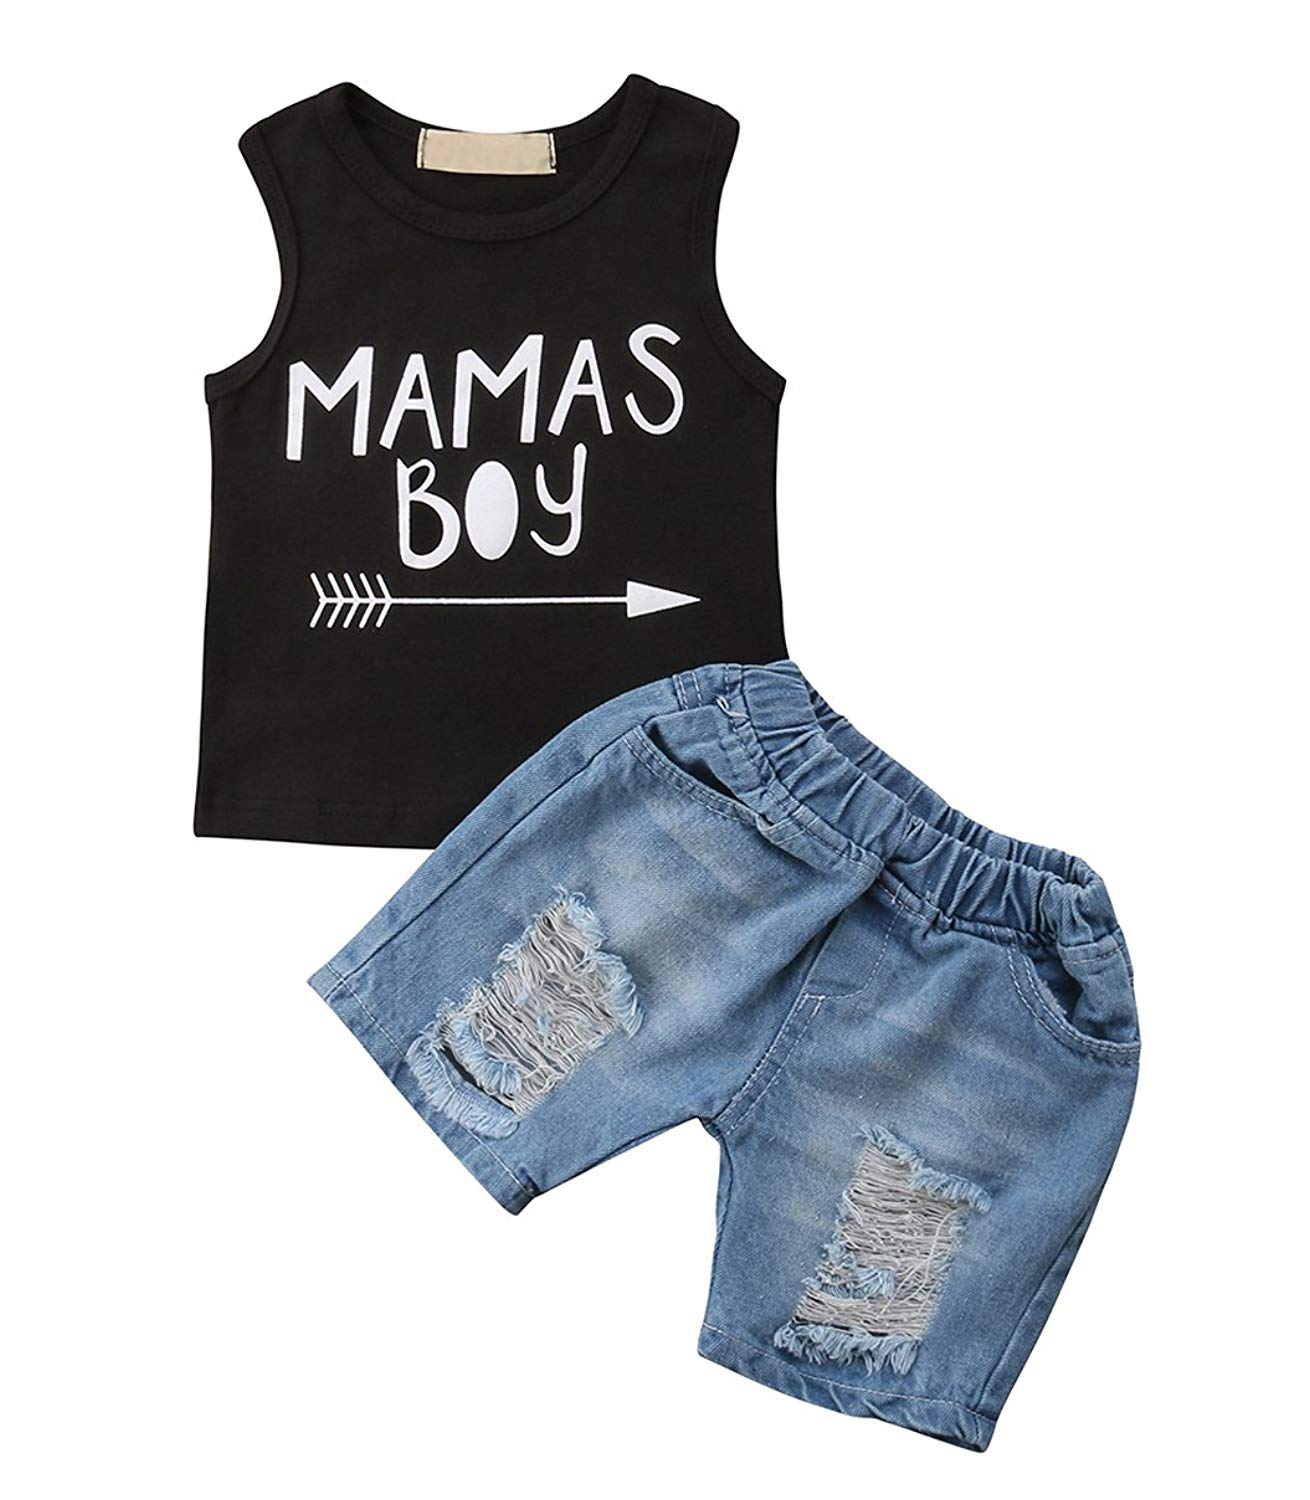 8b06e650 Get Quotations · MUNIMINI Mama's Boy Toddler Boys Sleeveless Tank Vest Top  and Ripped Jeans Short Outfit